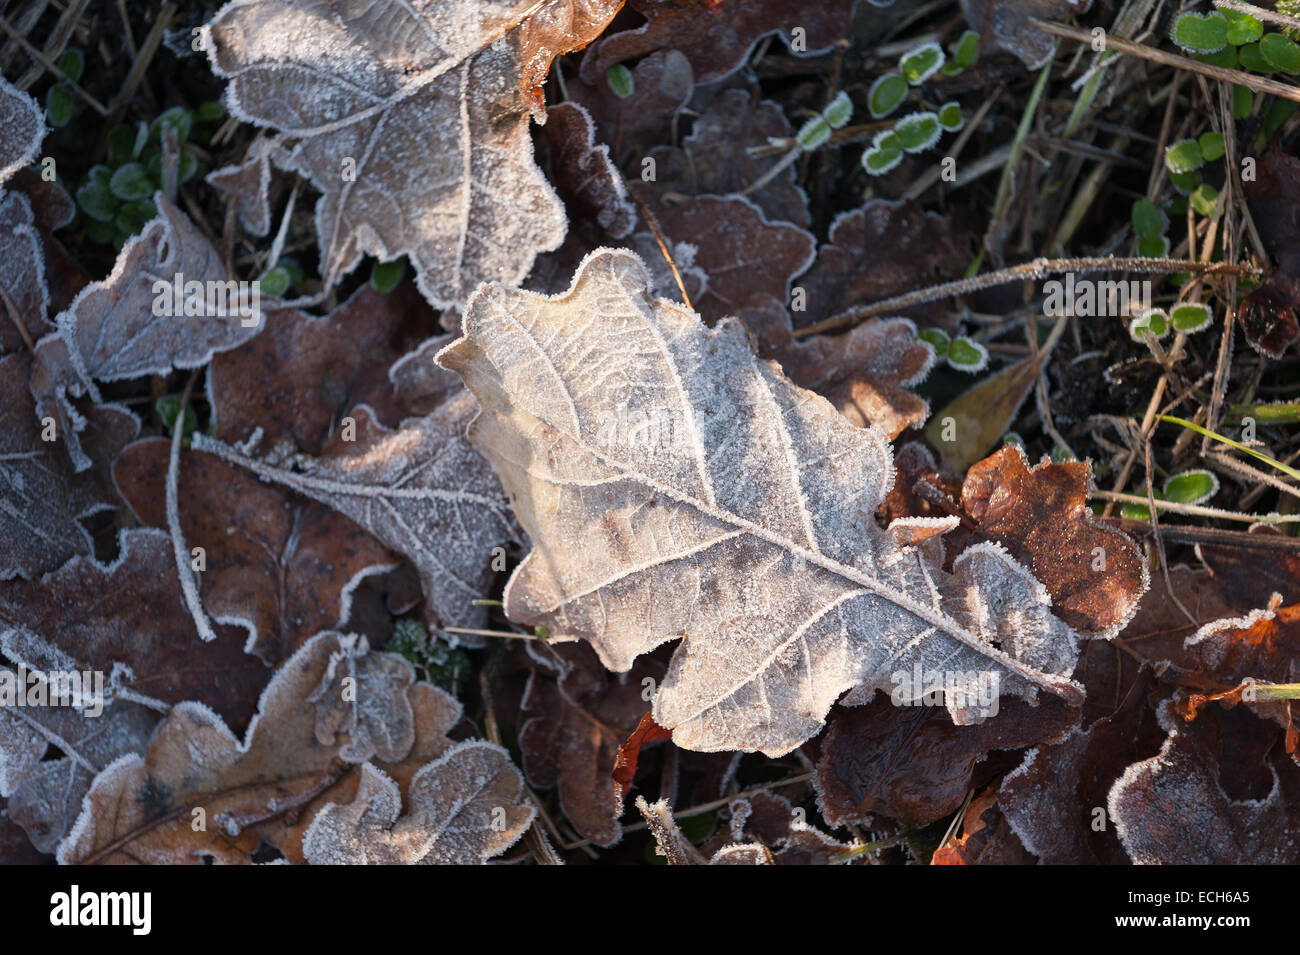 bitter cold frosty morning leaf litter oak leaves coated in coating of frost in late autumn winter Stock Photo